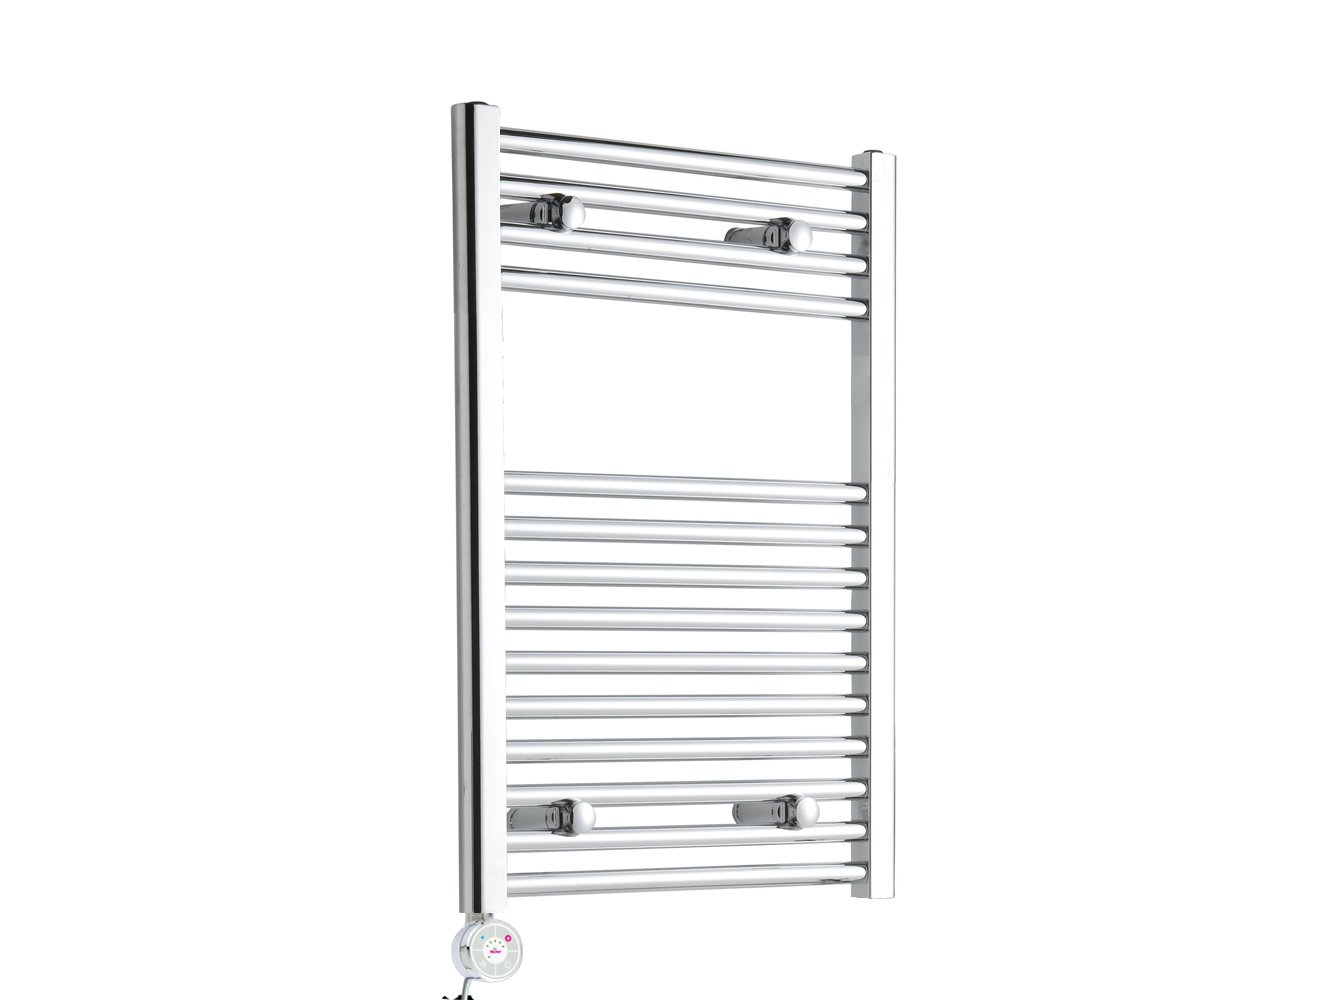 Chrome Straight Bathroom Thermostatic Electric Heated Towel Rail 800mm high x 500mm wide Geyser Ltd